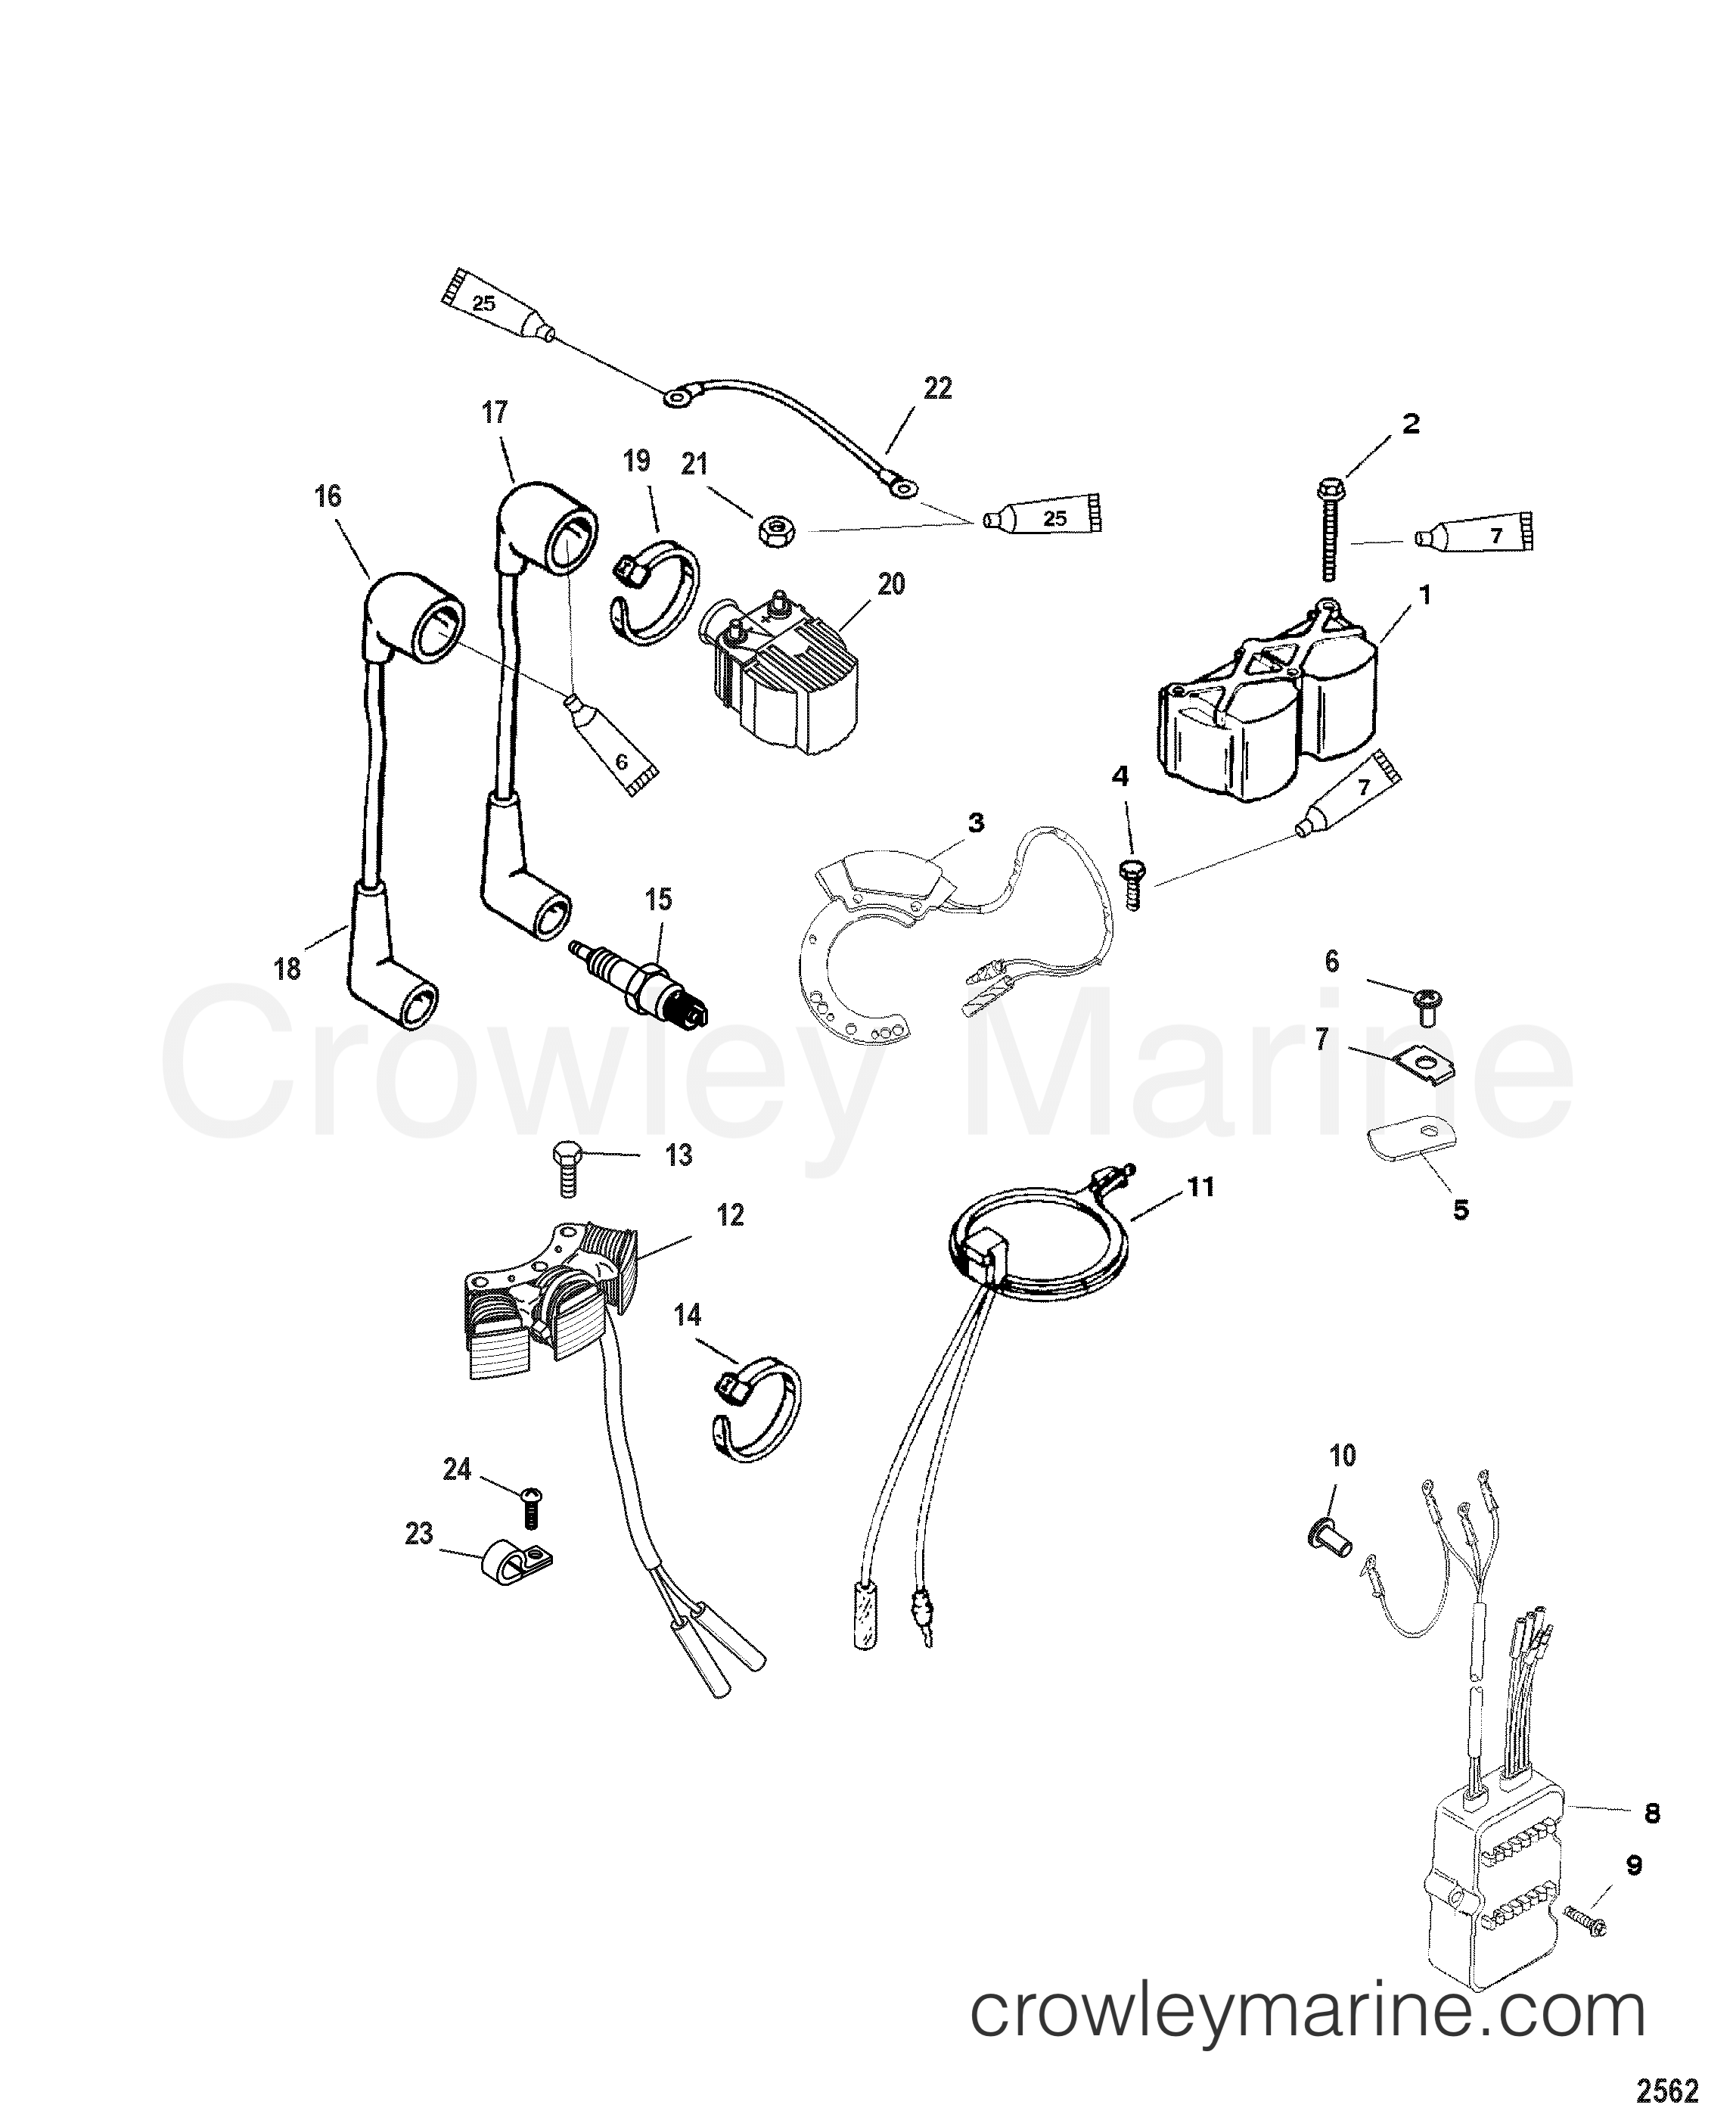 Ignition Electrical Components